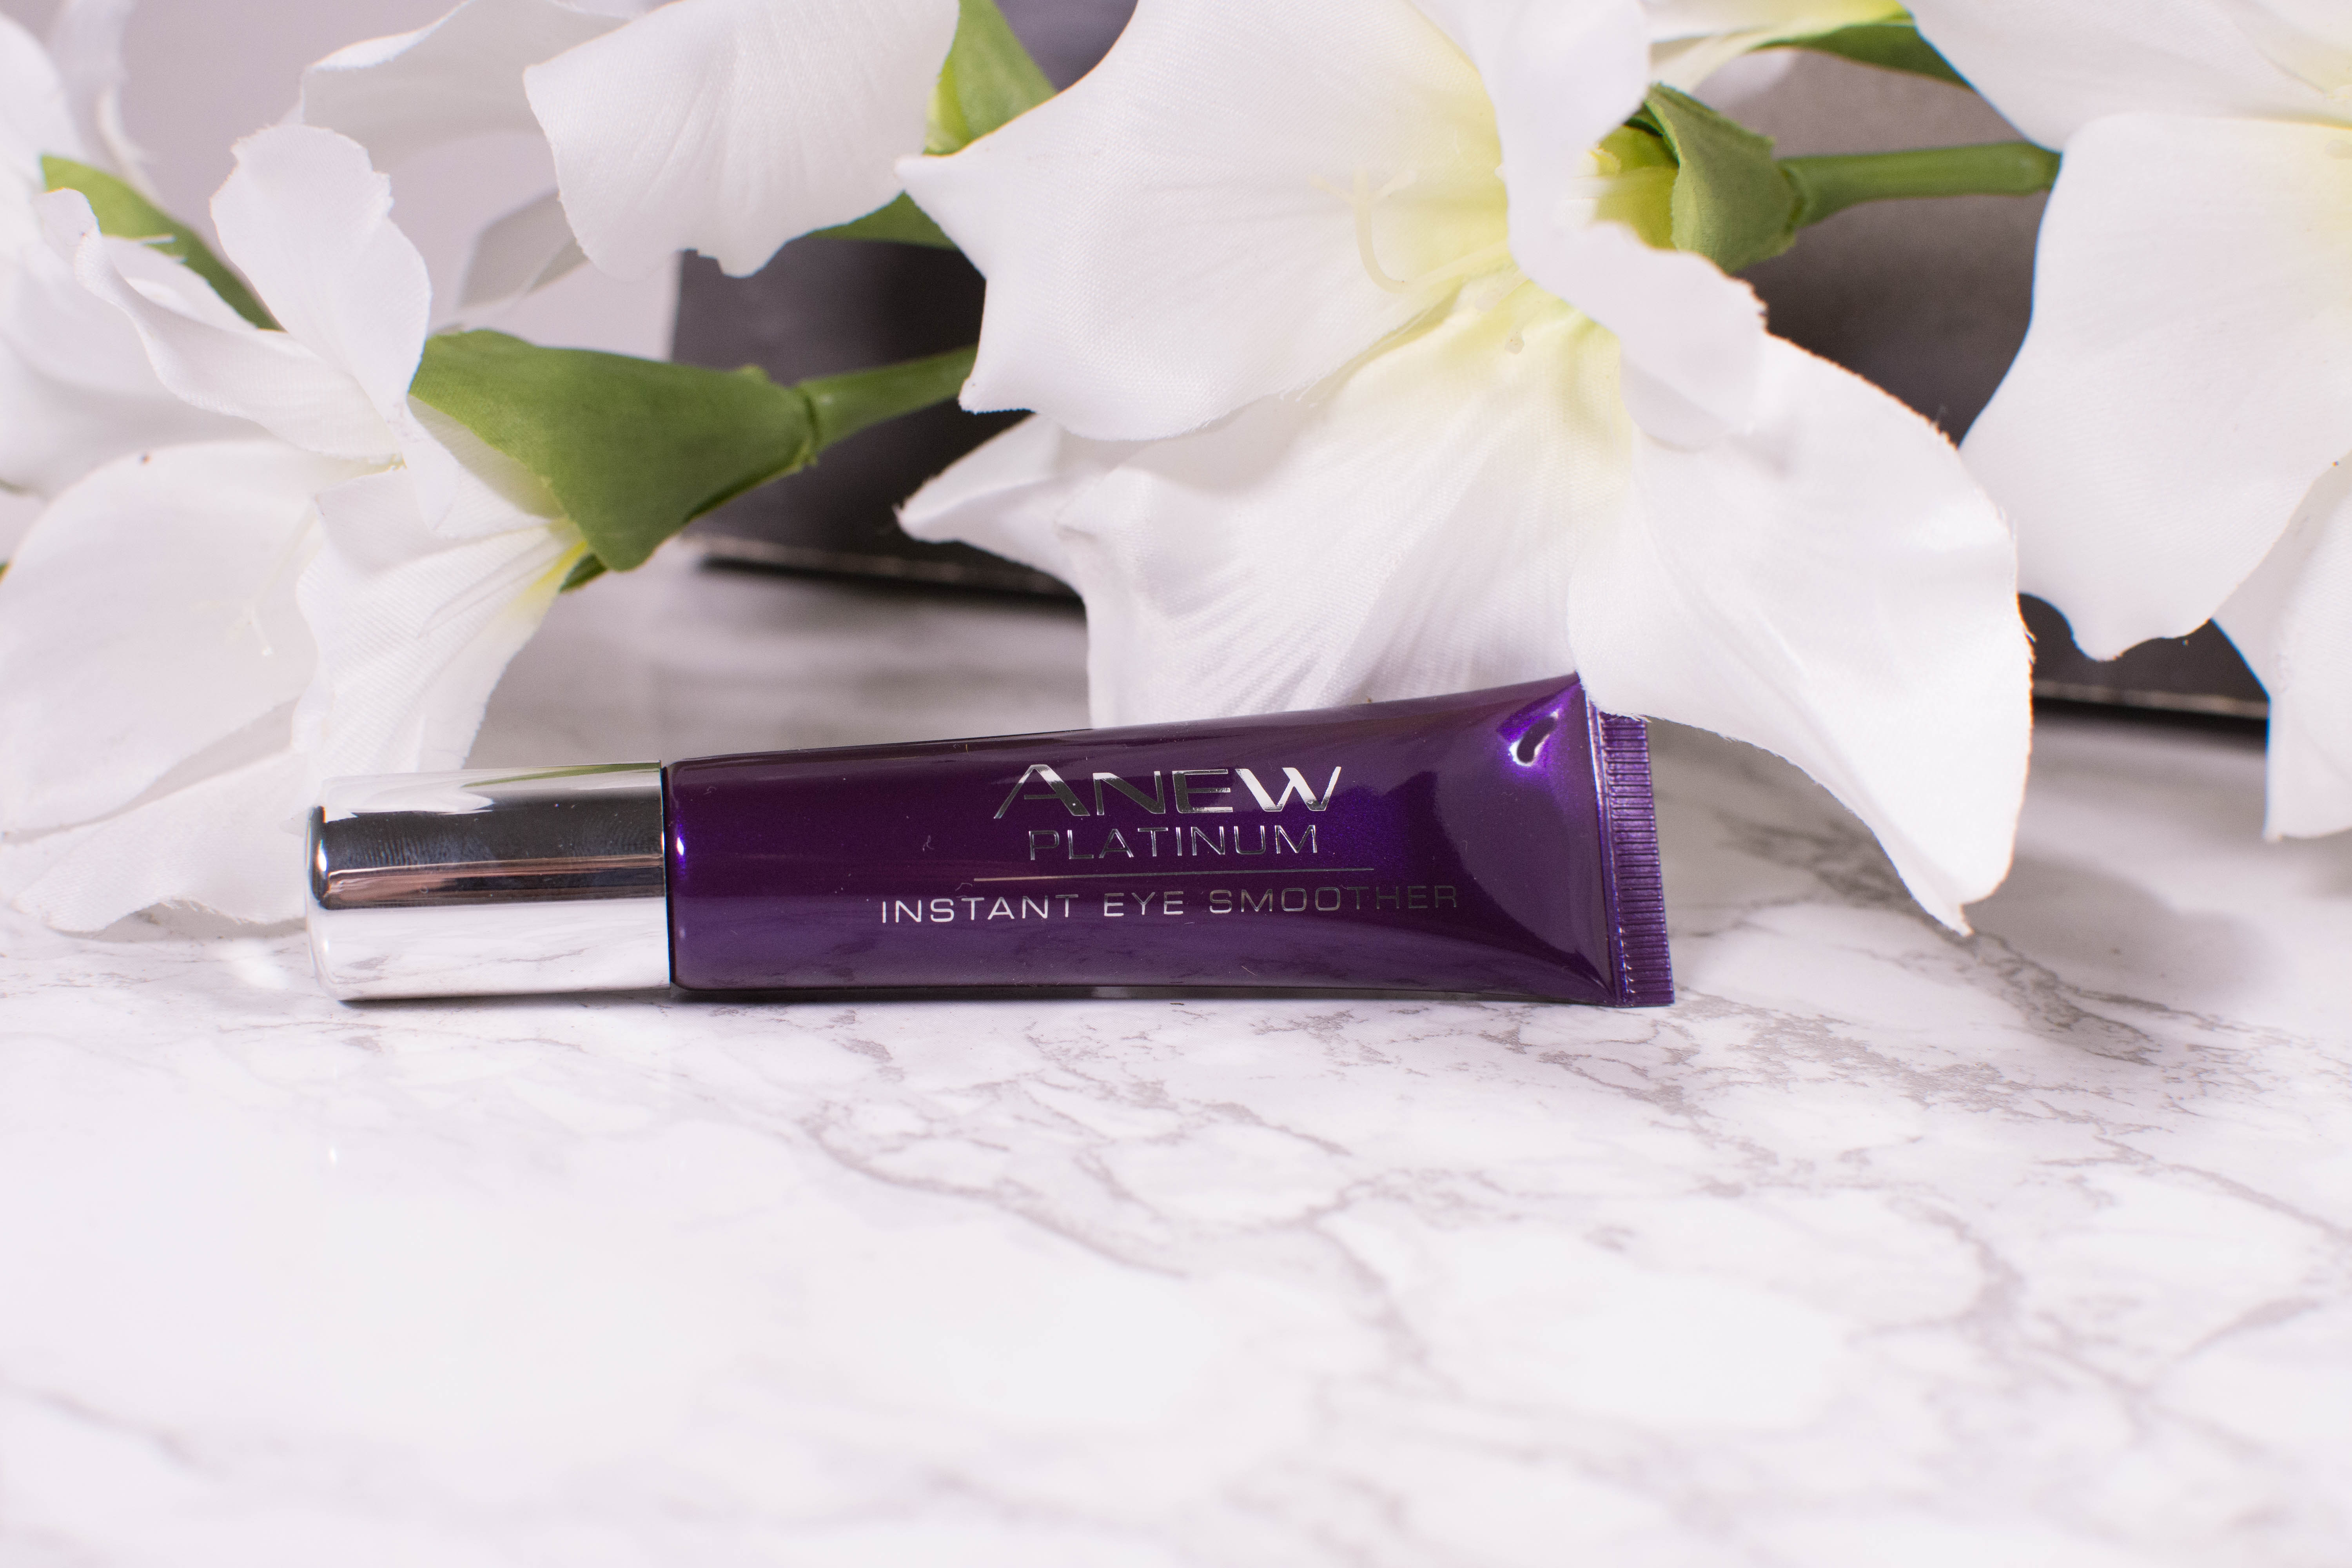 Avon Anew Platinum Instant Eye Smoother